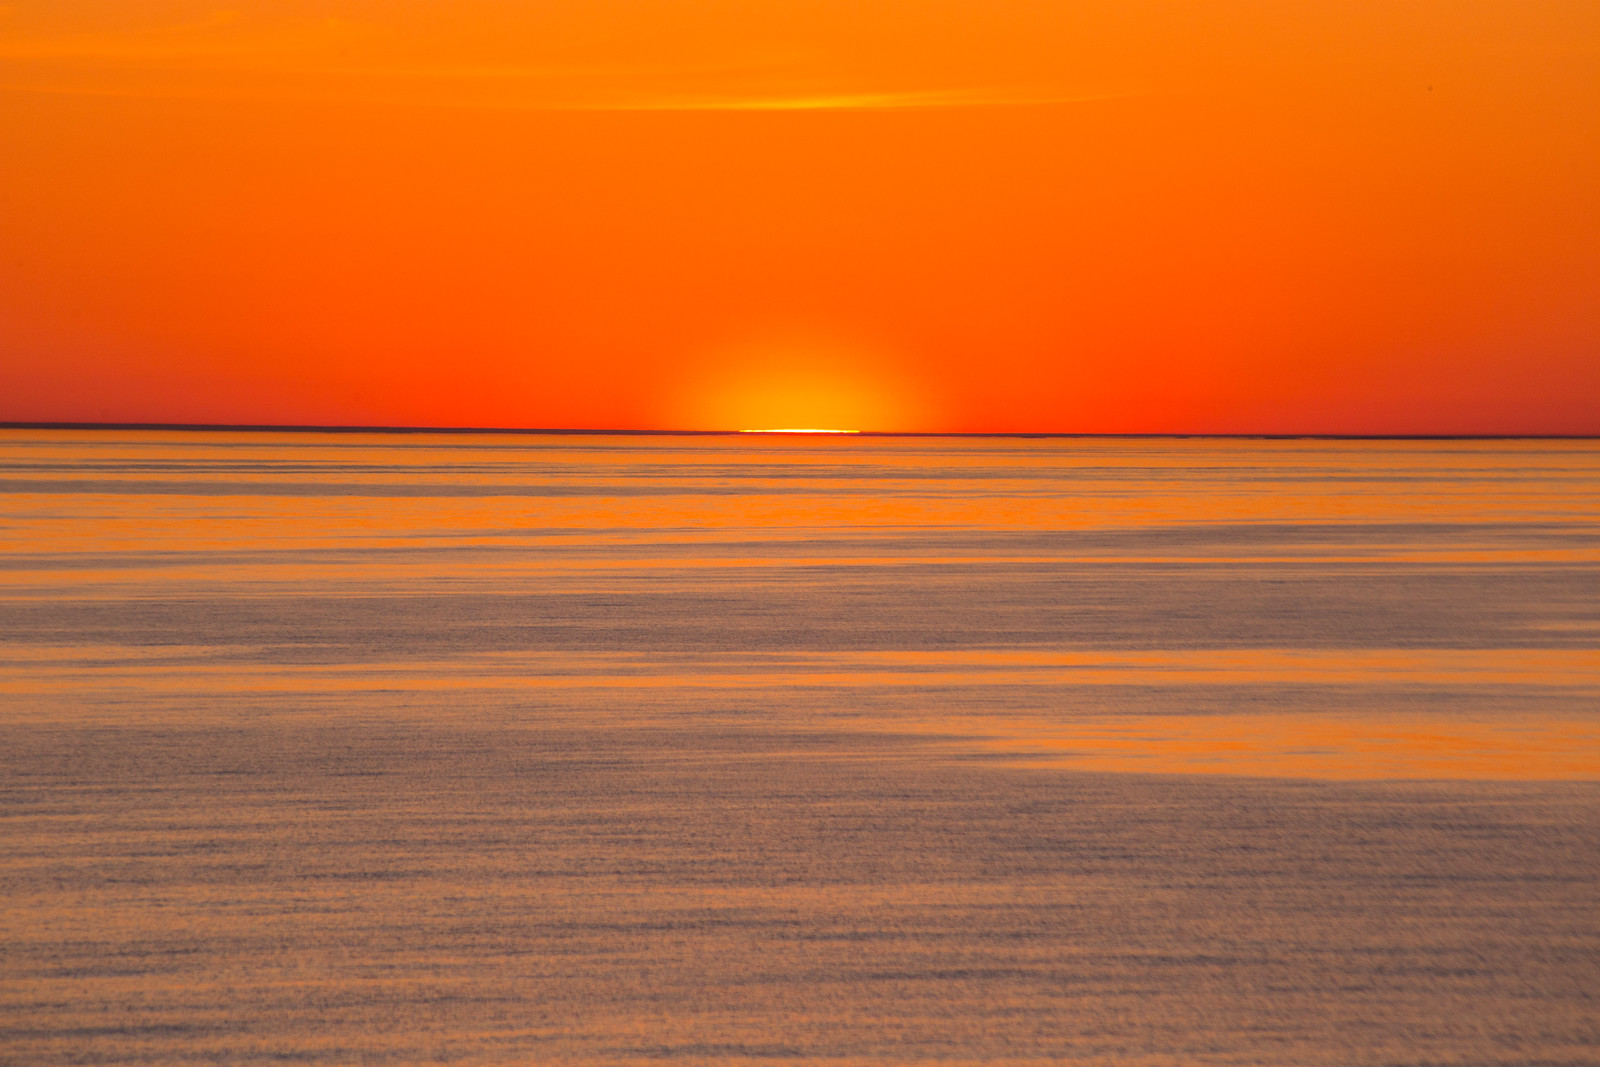 Sunrise in the Baltic Sea #1